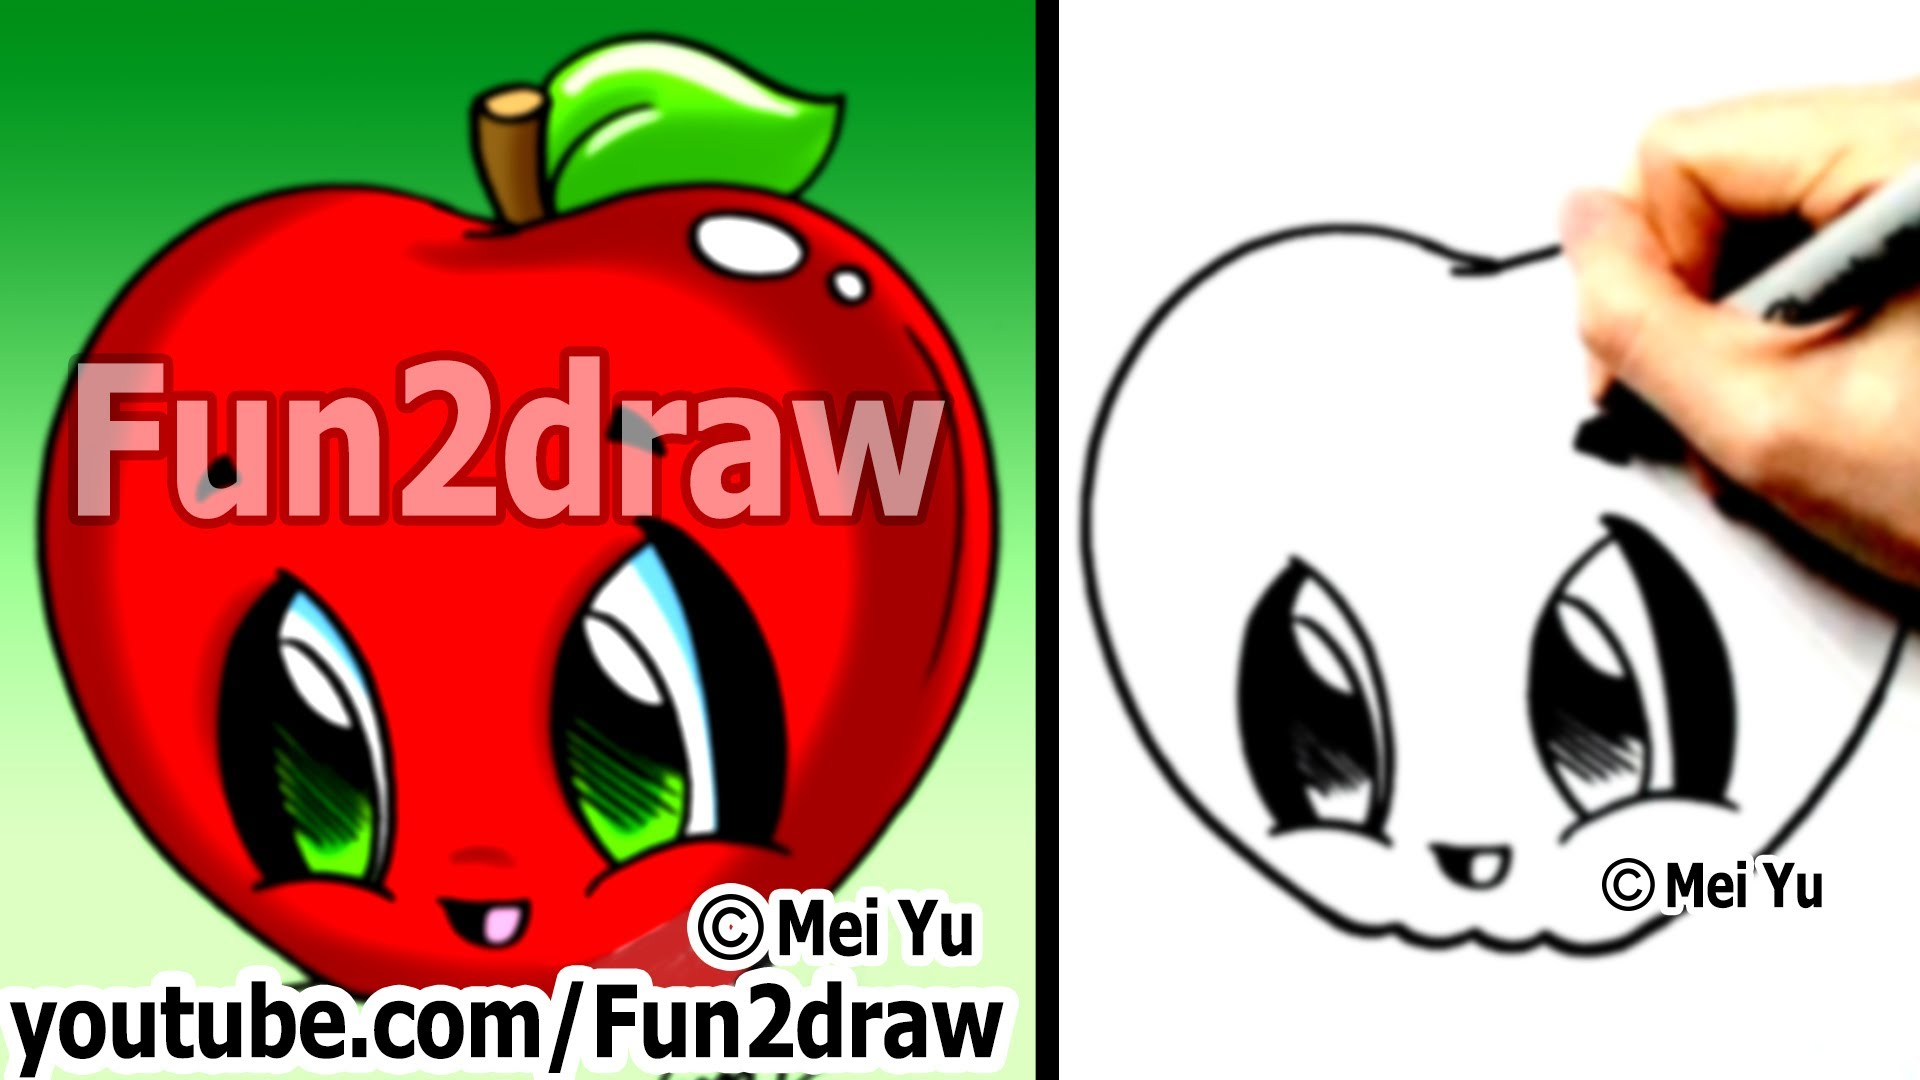 Drawn watermelon fun2draw How Easy Easy to to